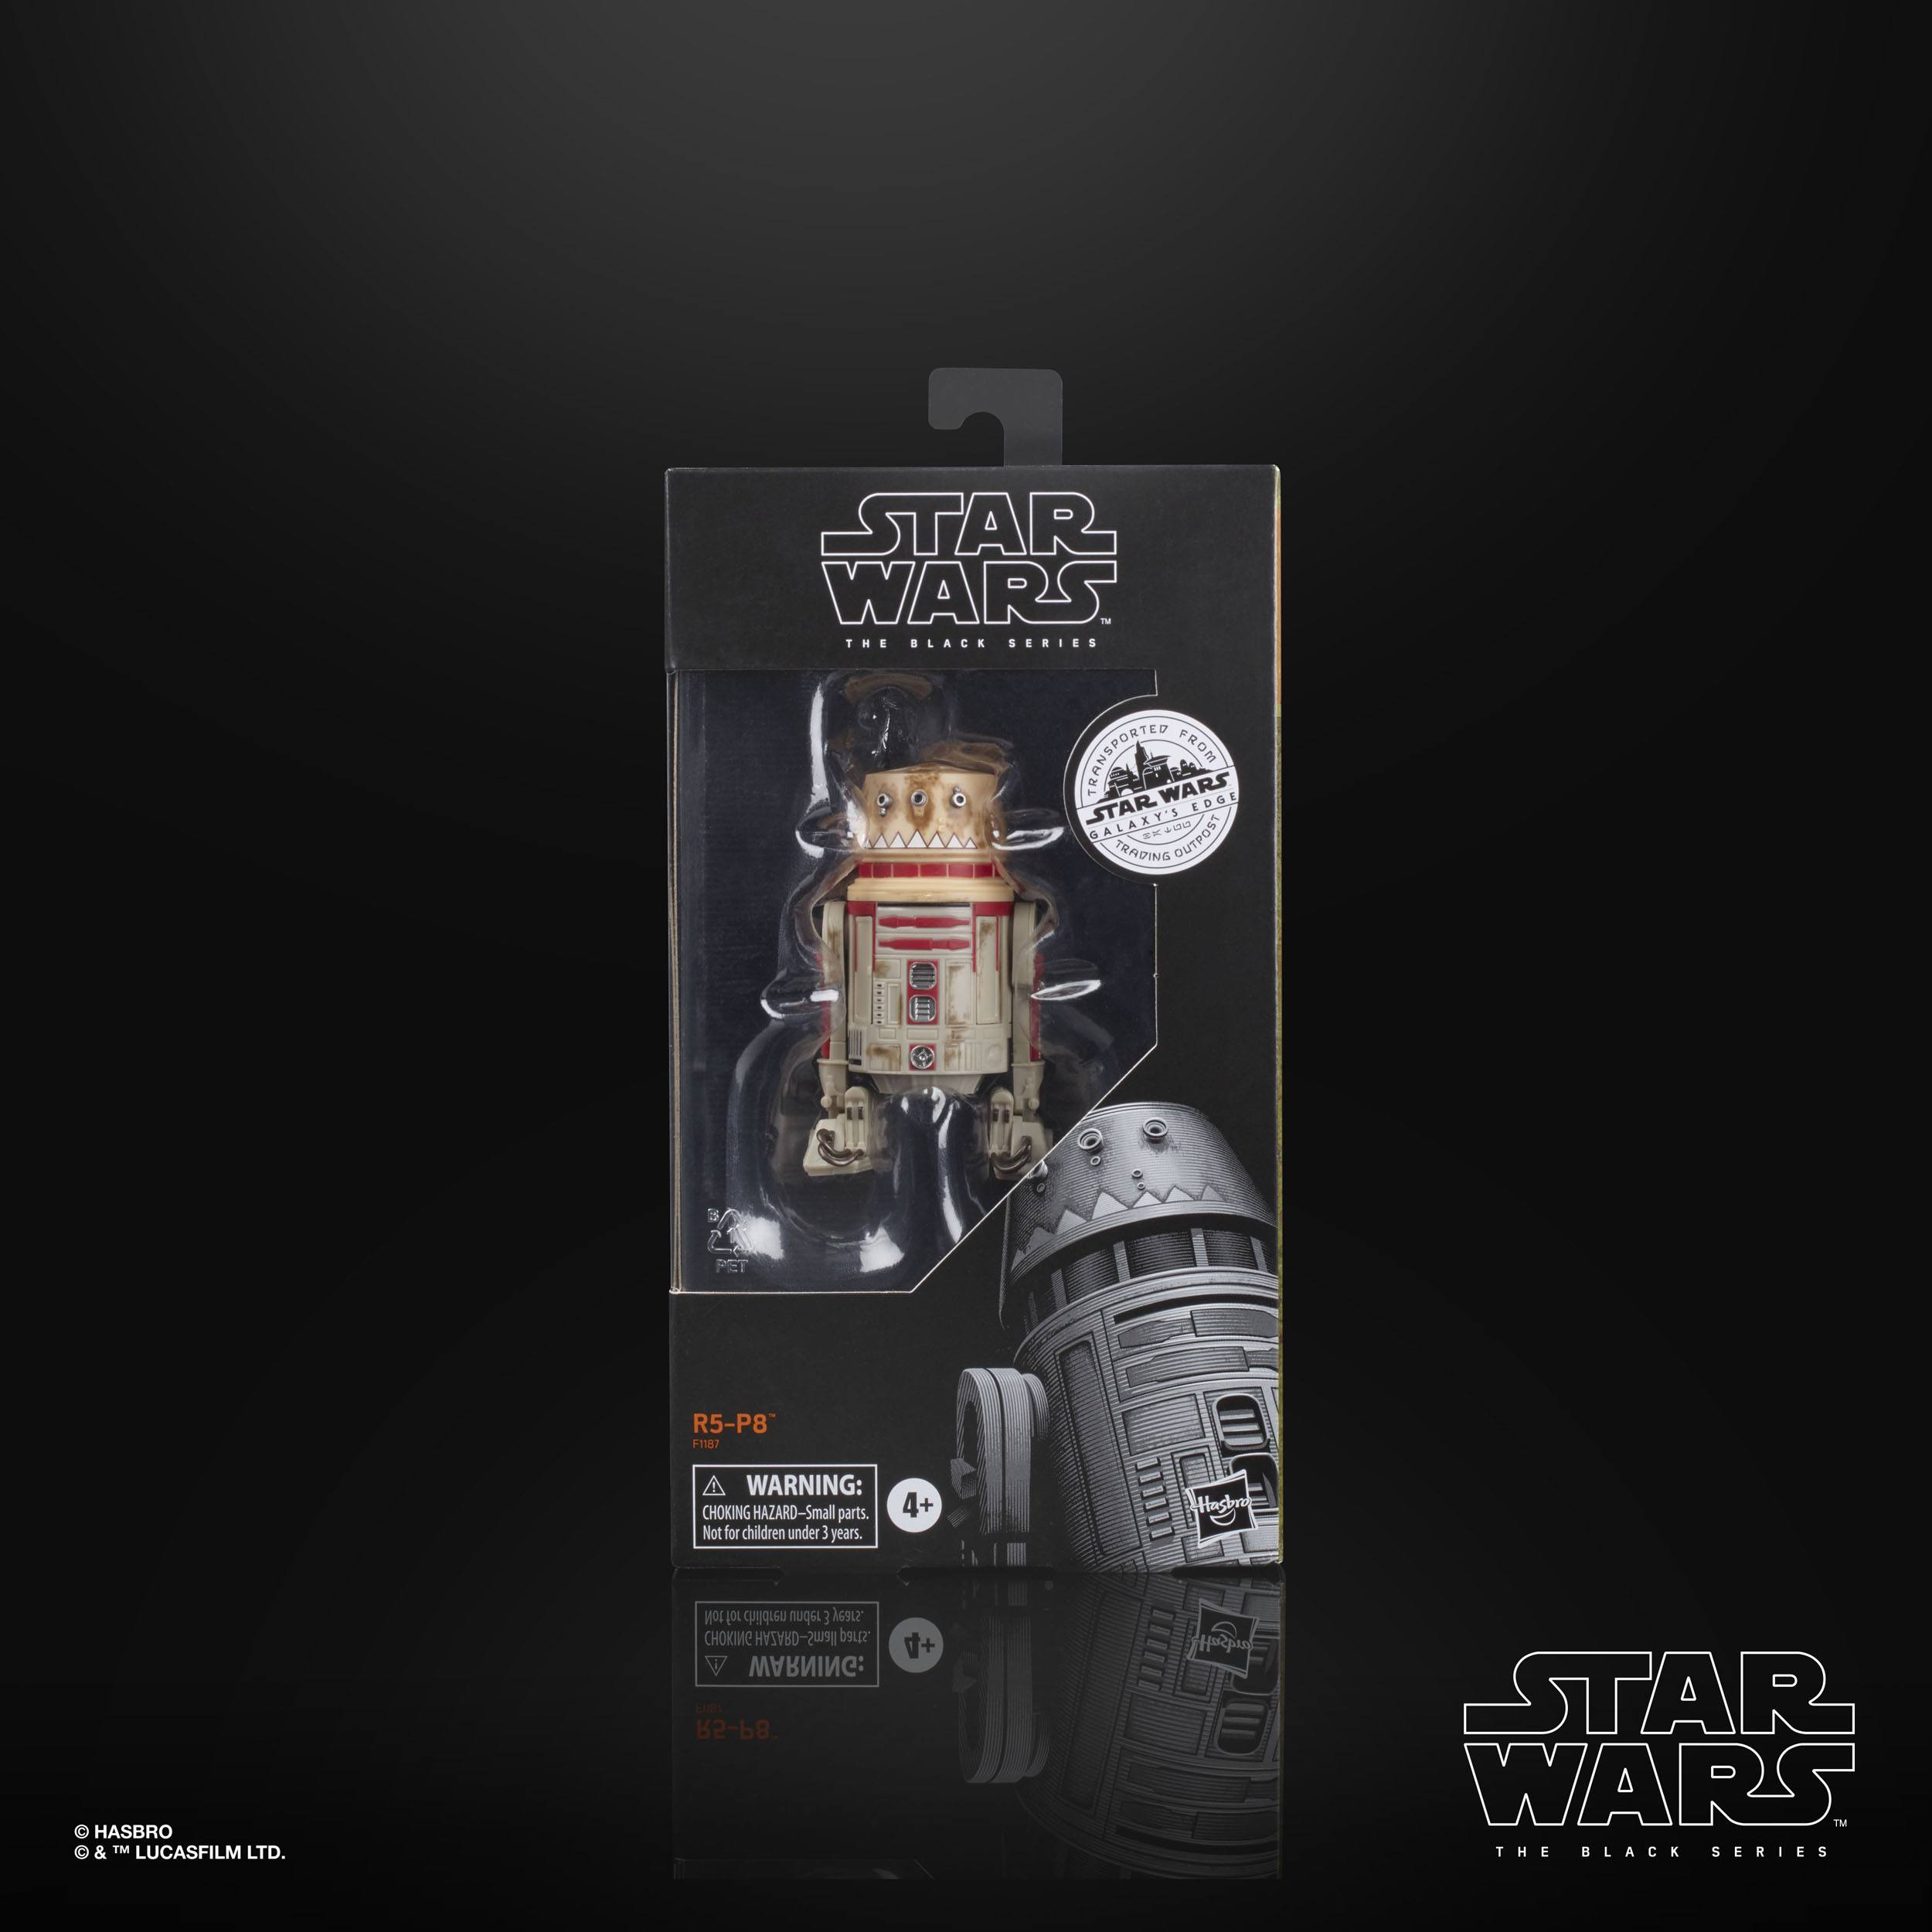 Star Wars Galaxy's Edge Black Series Actionfigur 2020 R5-P8 15 cm HASF1187 5010993773091